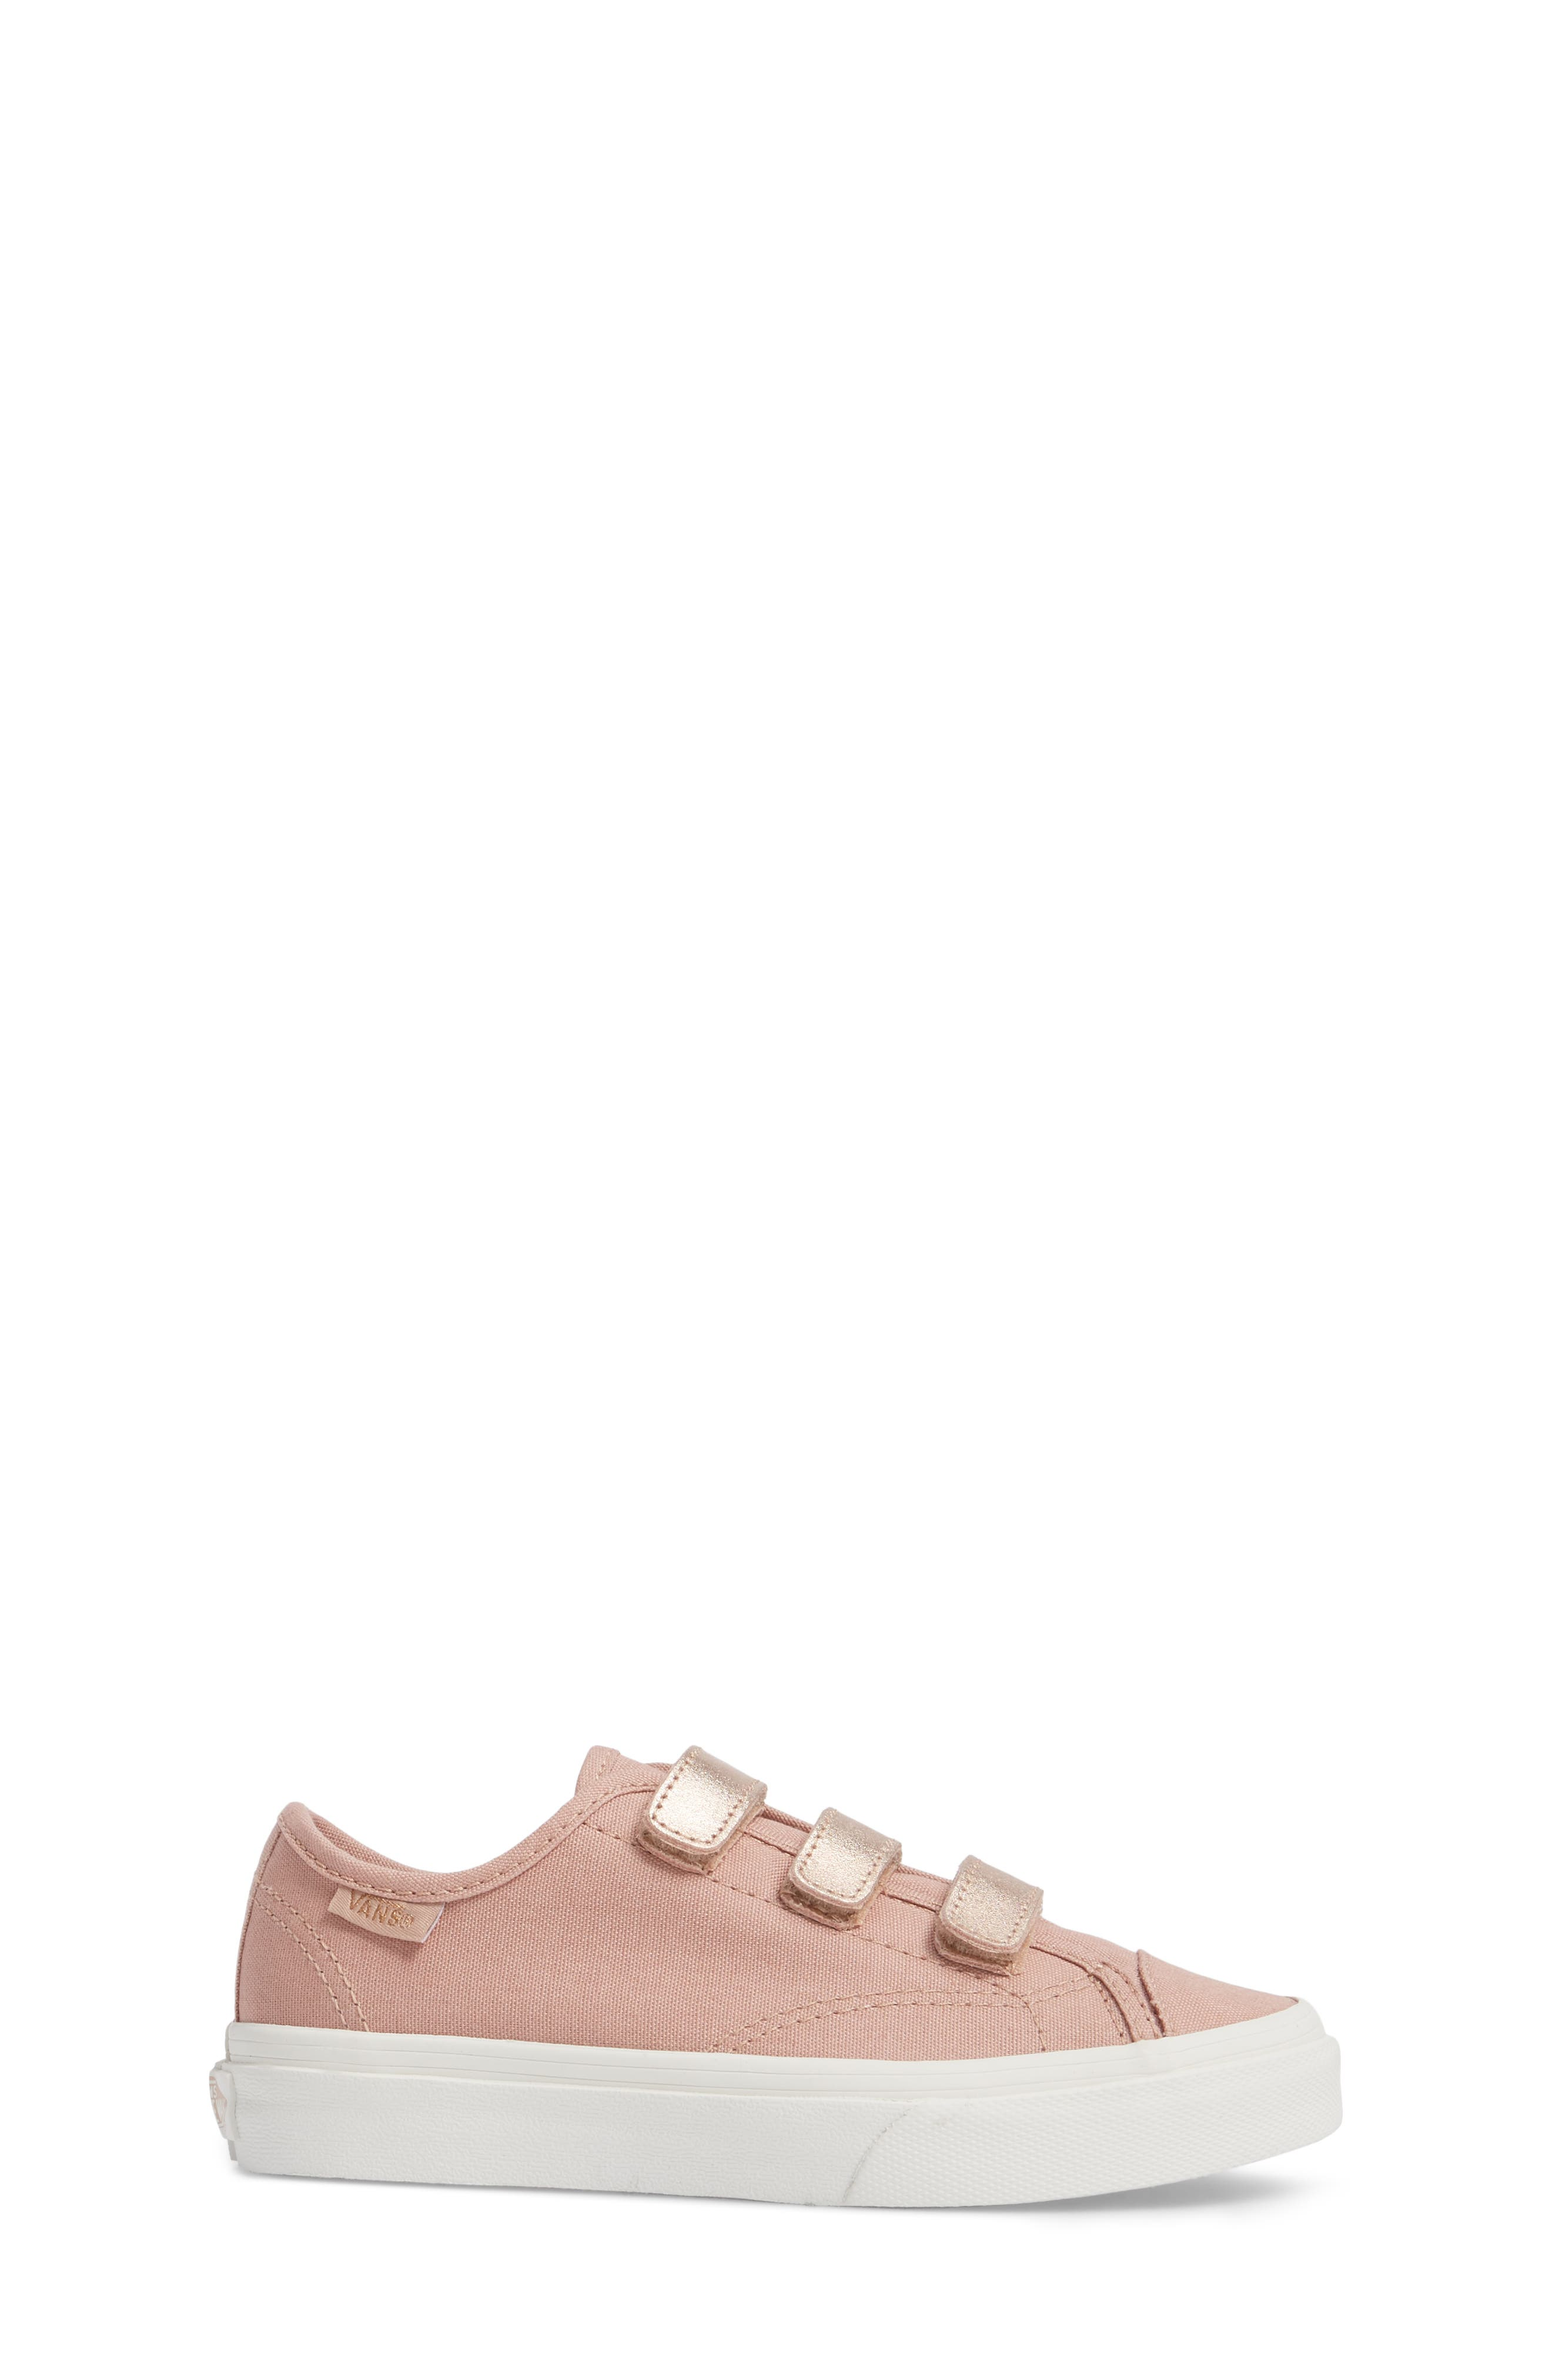 Style 23V Sneaker,                             Alternate thumbnail 3, color,                             Two-Tone Rose Gold Metallic